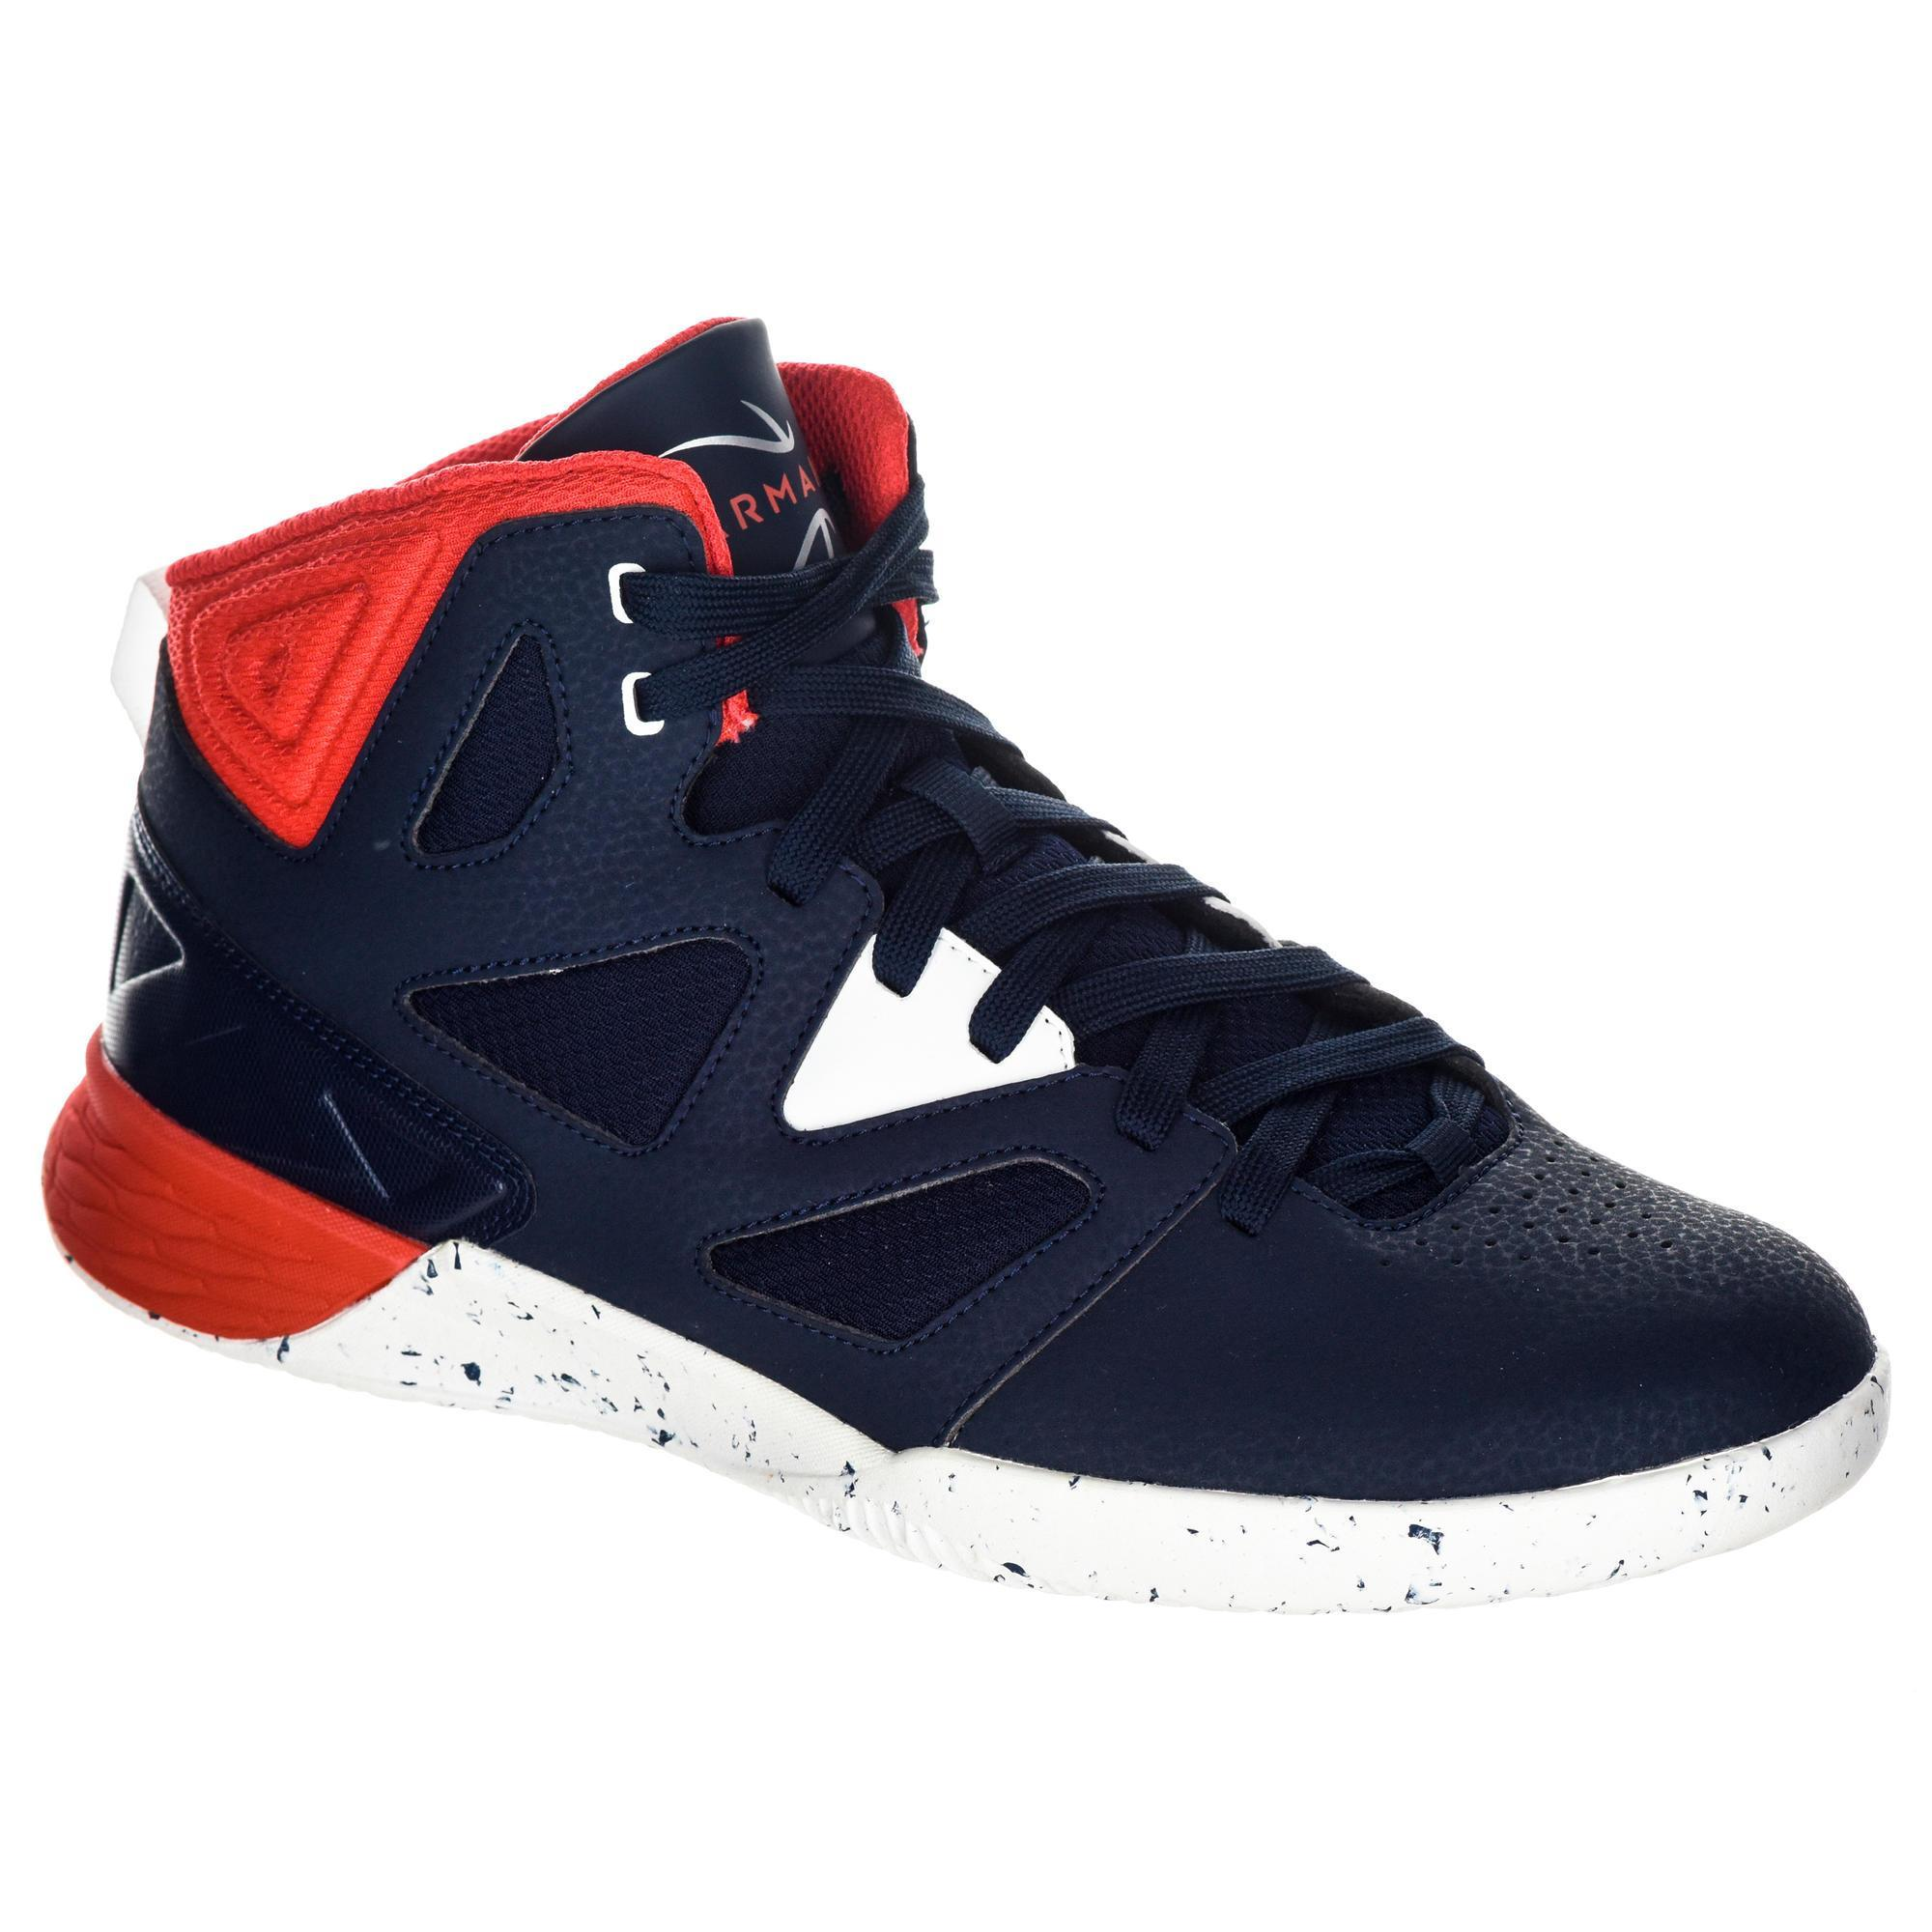 new lifestyle factory price footwear Chaussures de basketball femme   Chaussures de basket femme ...